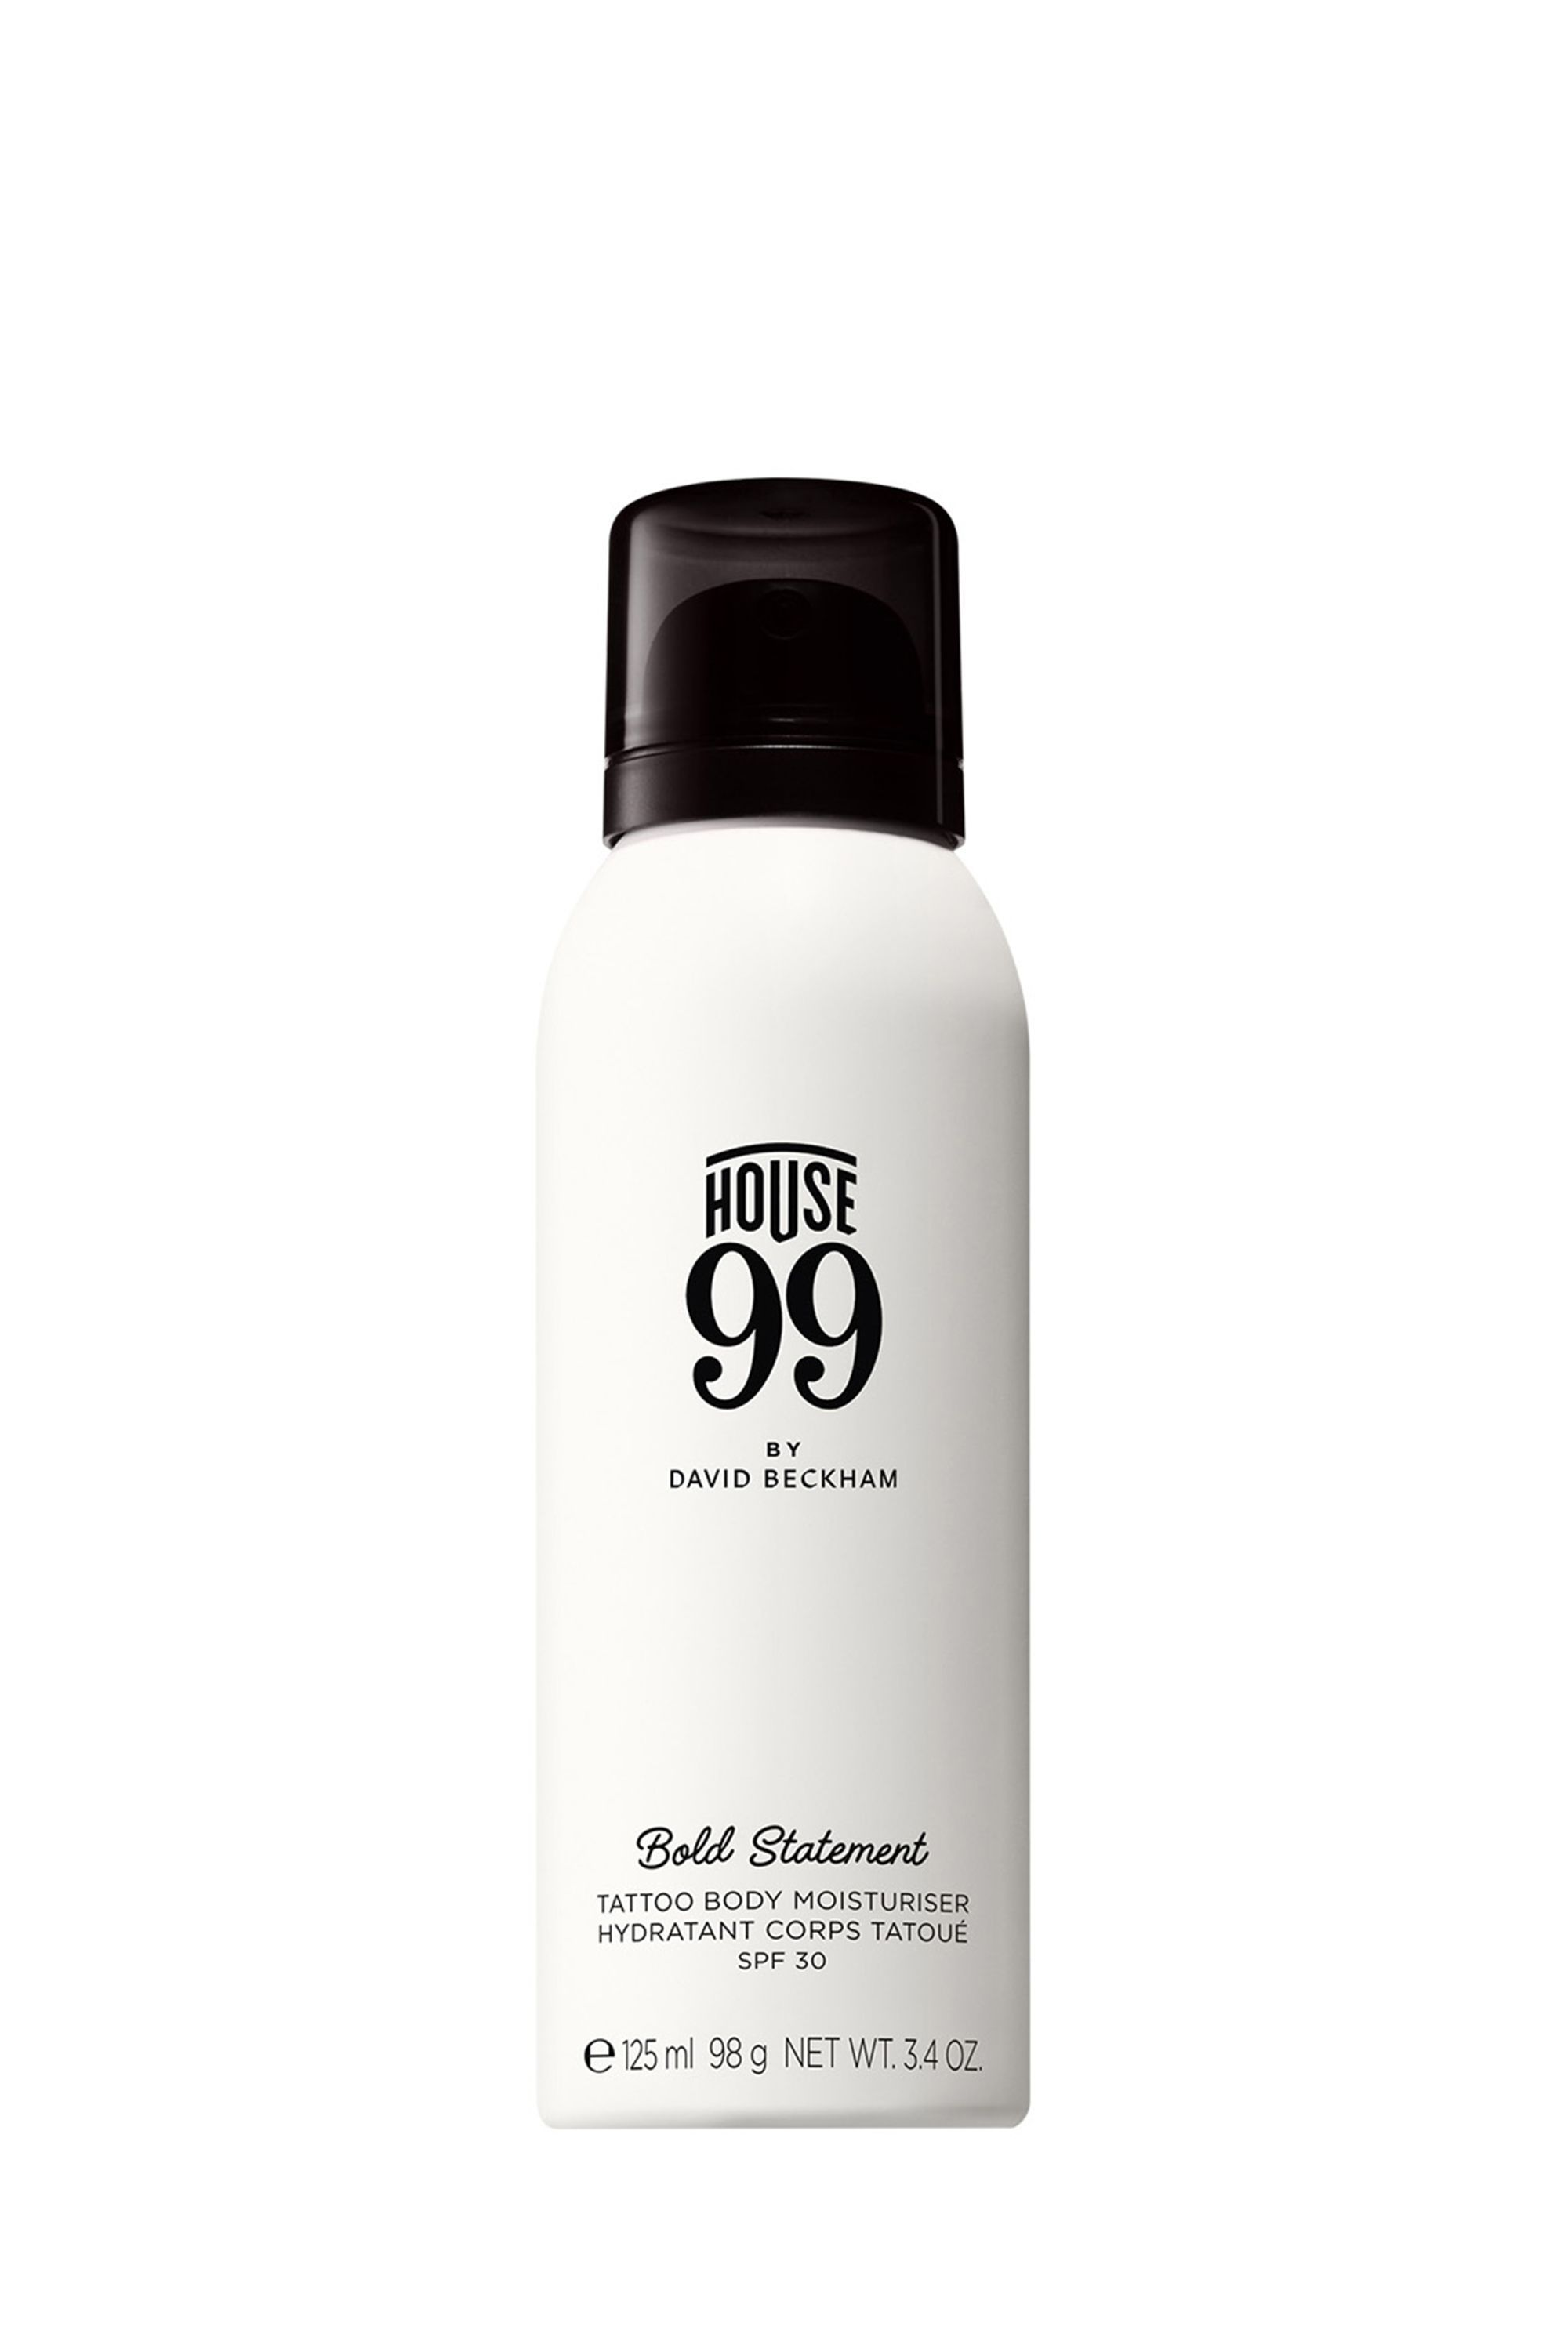 5 Best Lotions for Tattoos - Top Moisturizers for Tattooed Skin